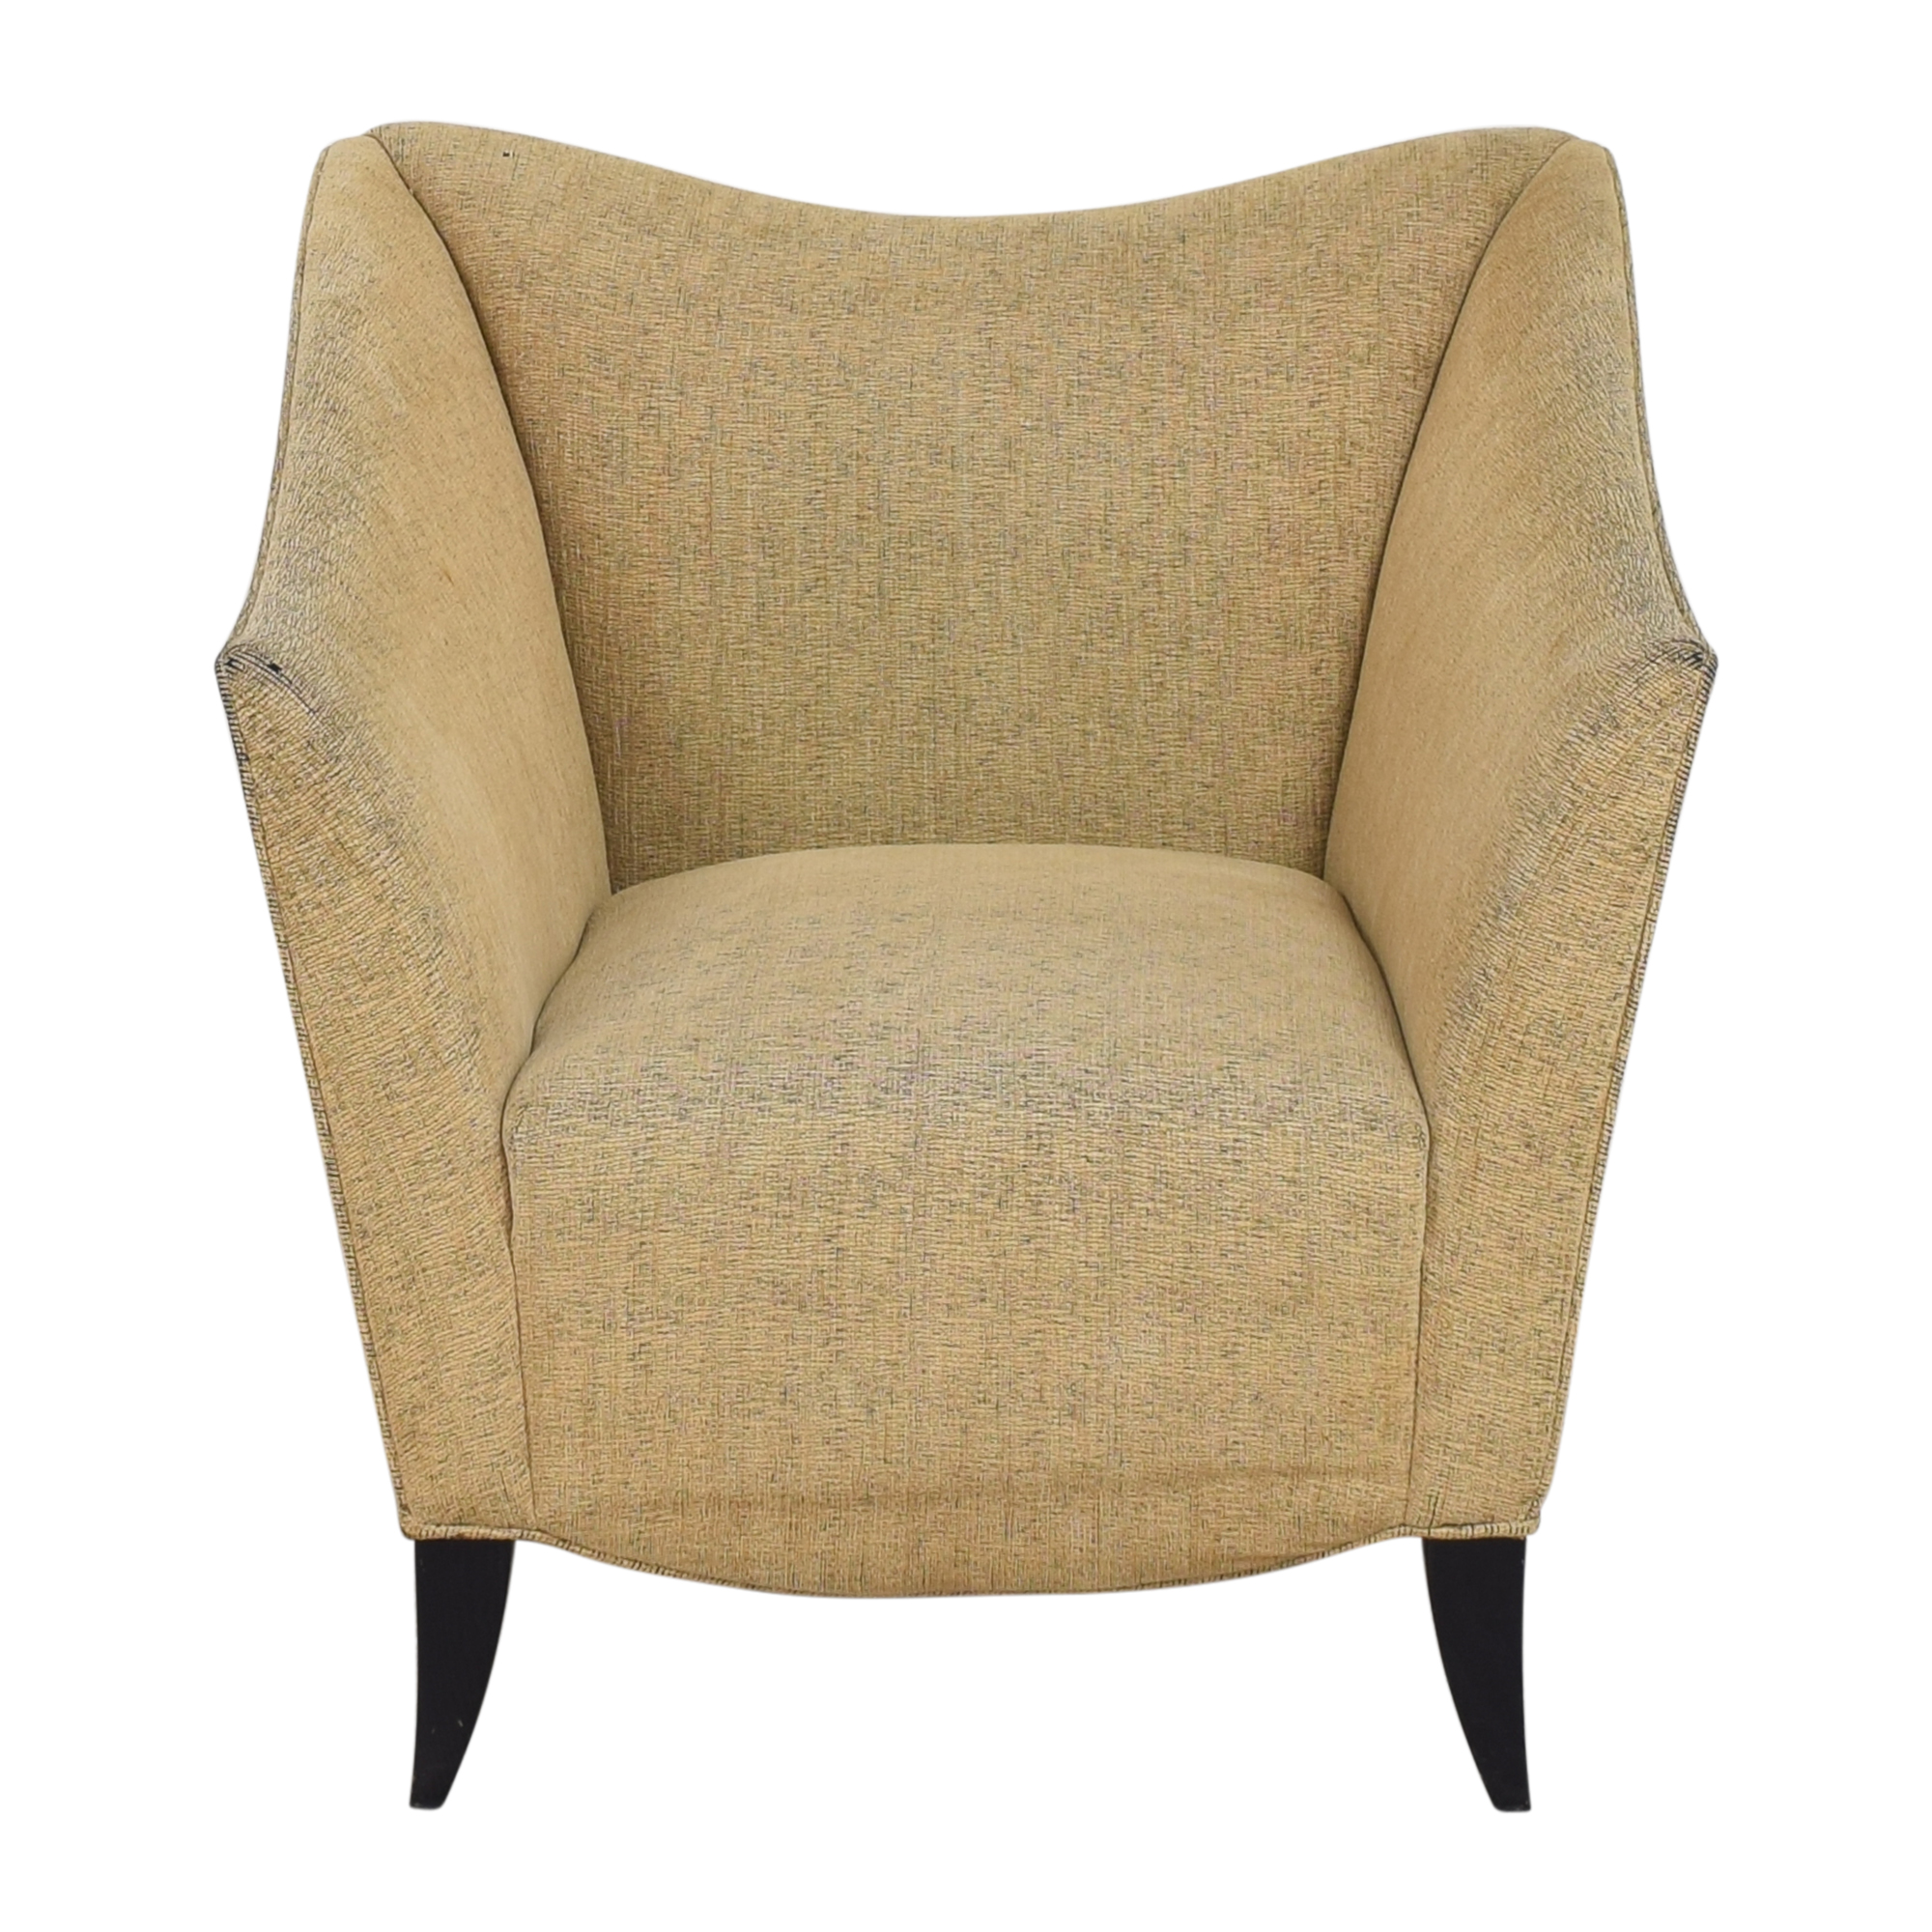 Swaim Accent Chair / Accent Chairs